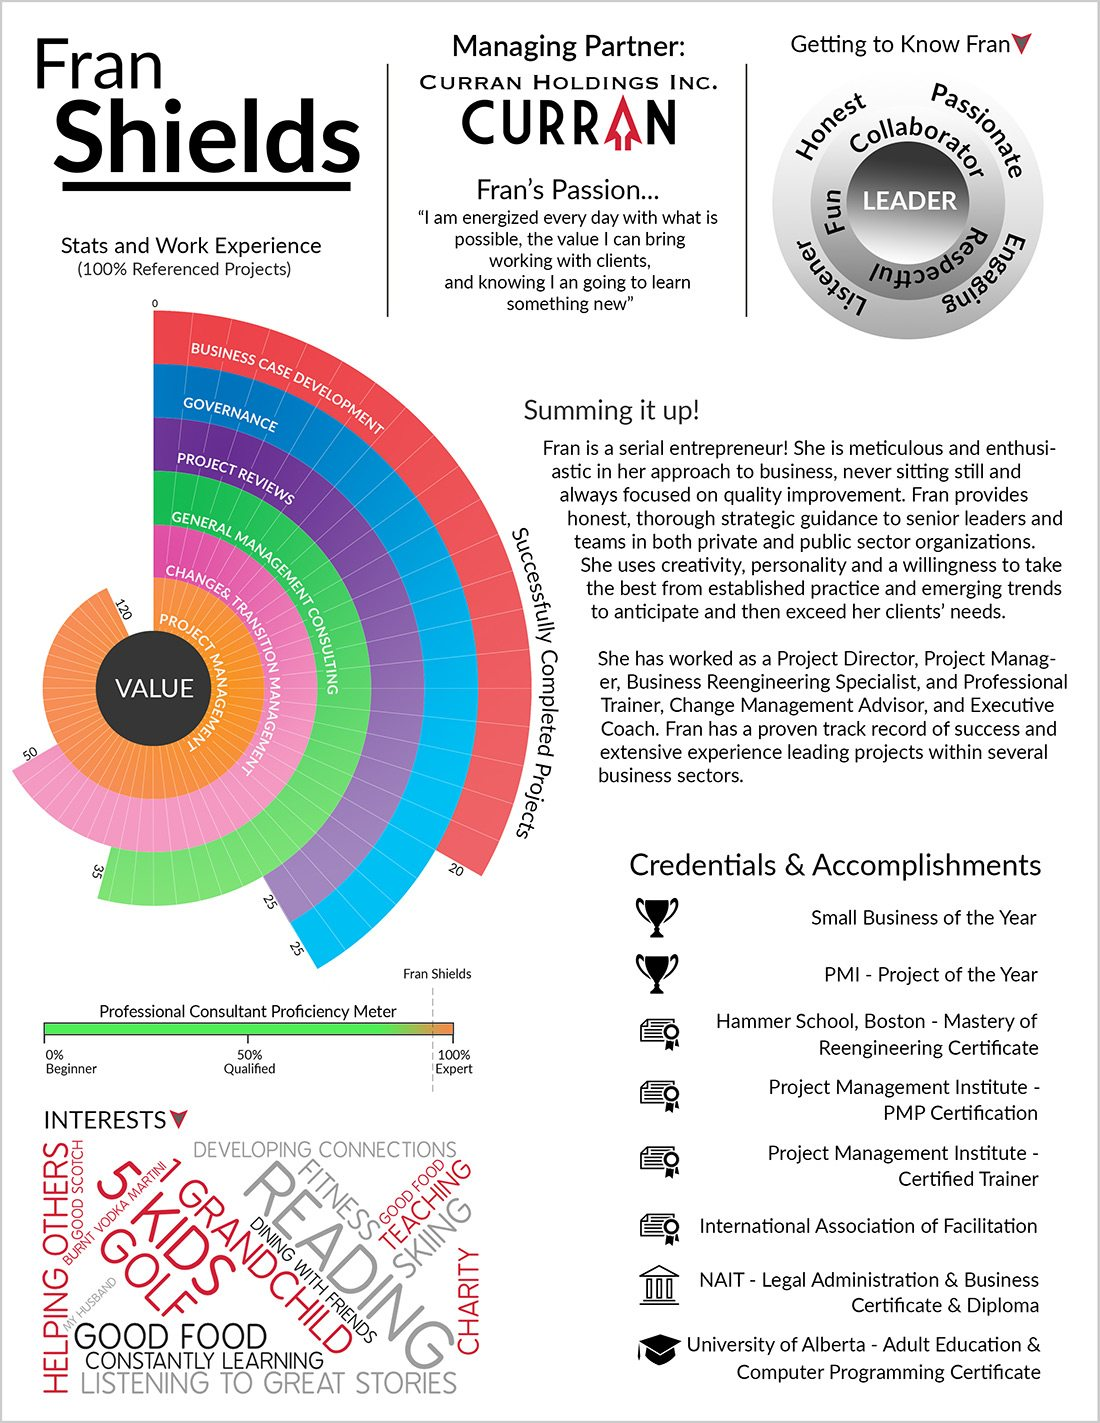 An infographic depicting Fran Shields business and personal merits